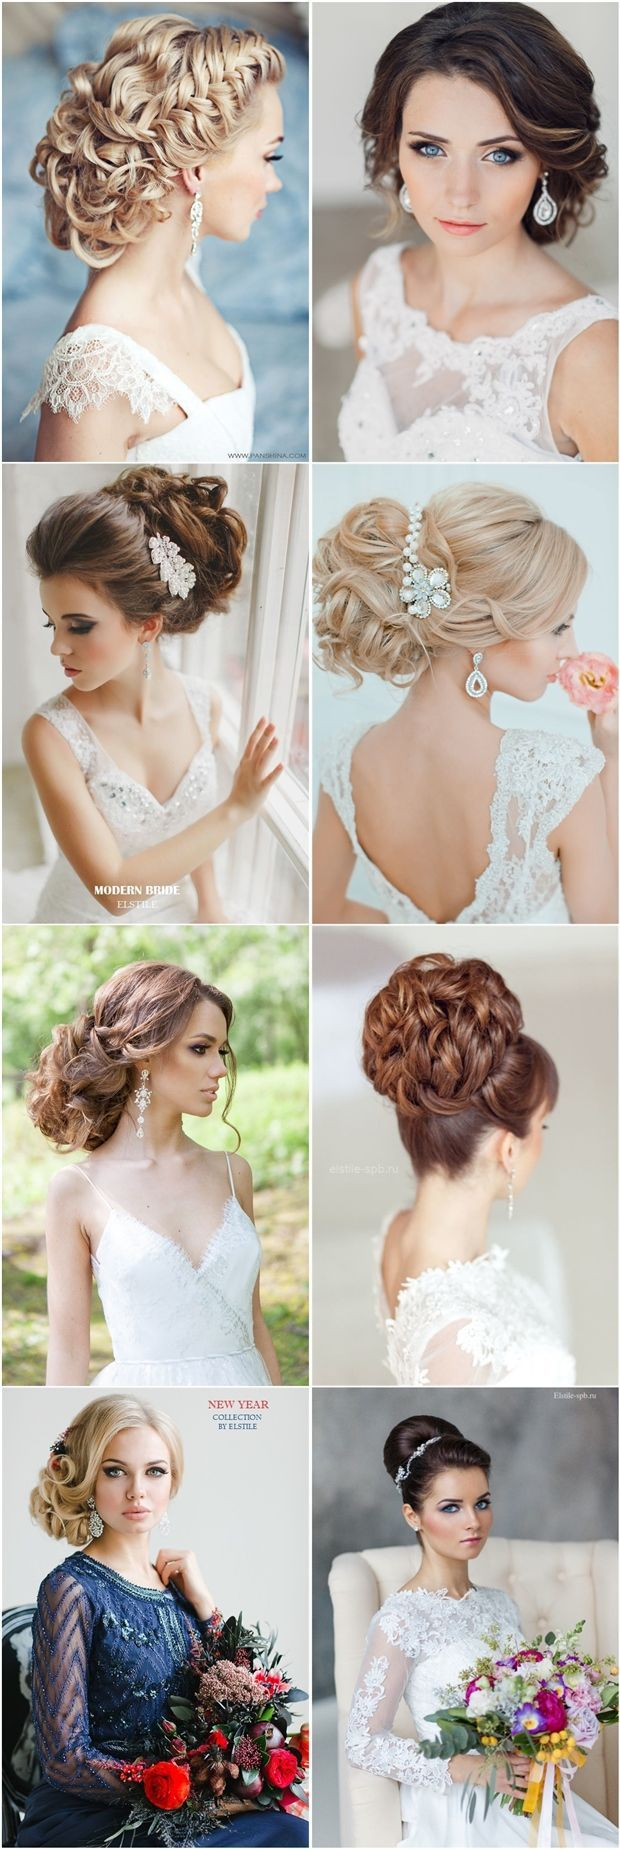 Coiffure mariage most beautiful updo wedding hairstyles to